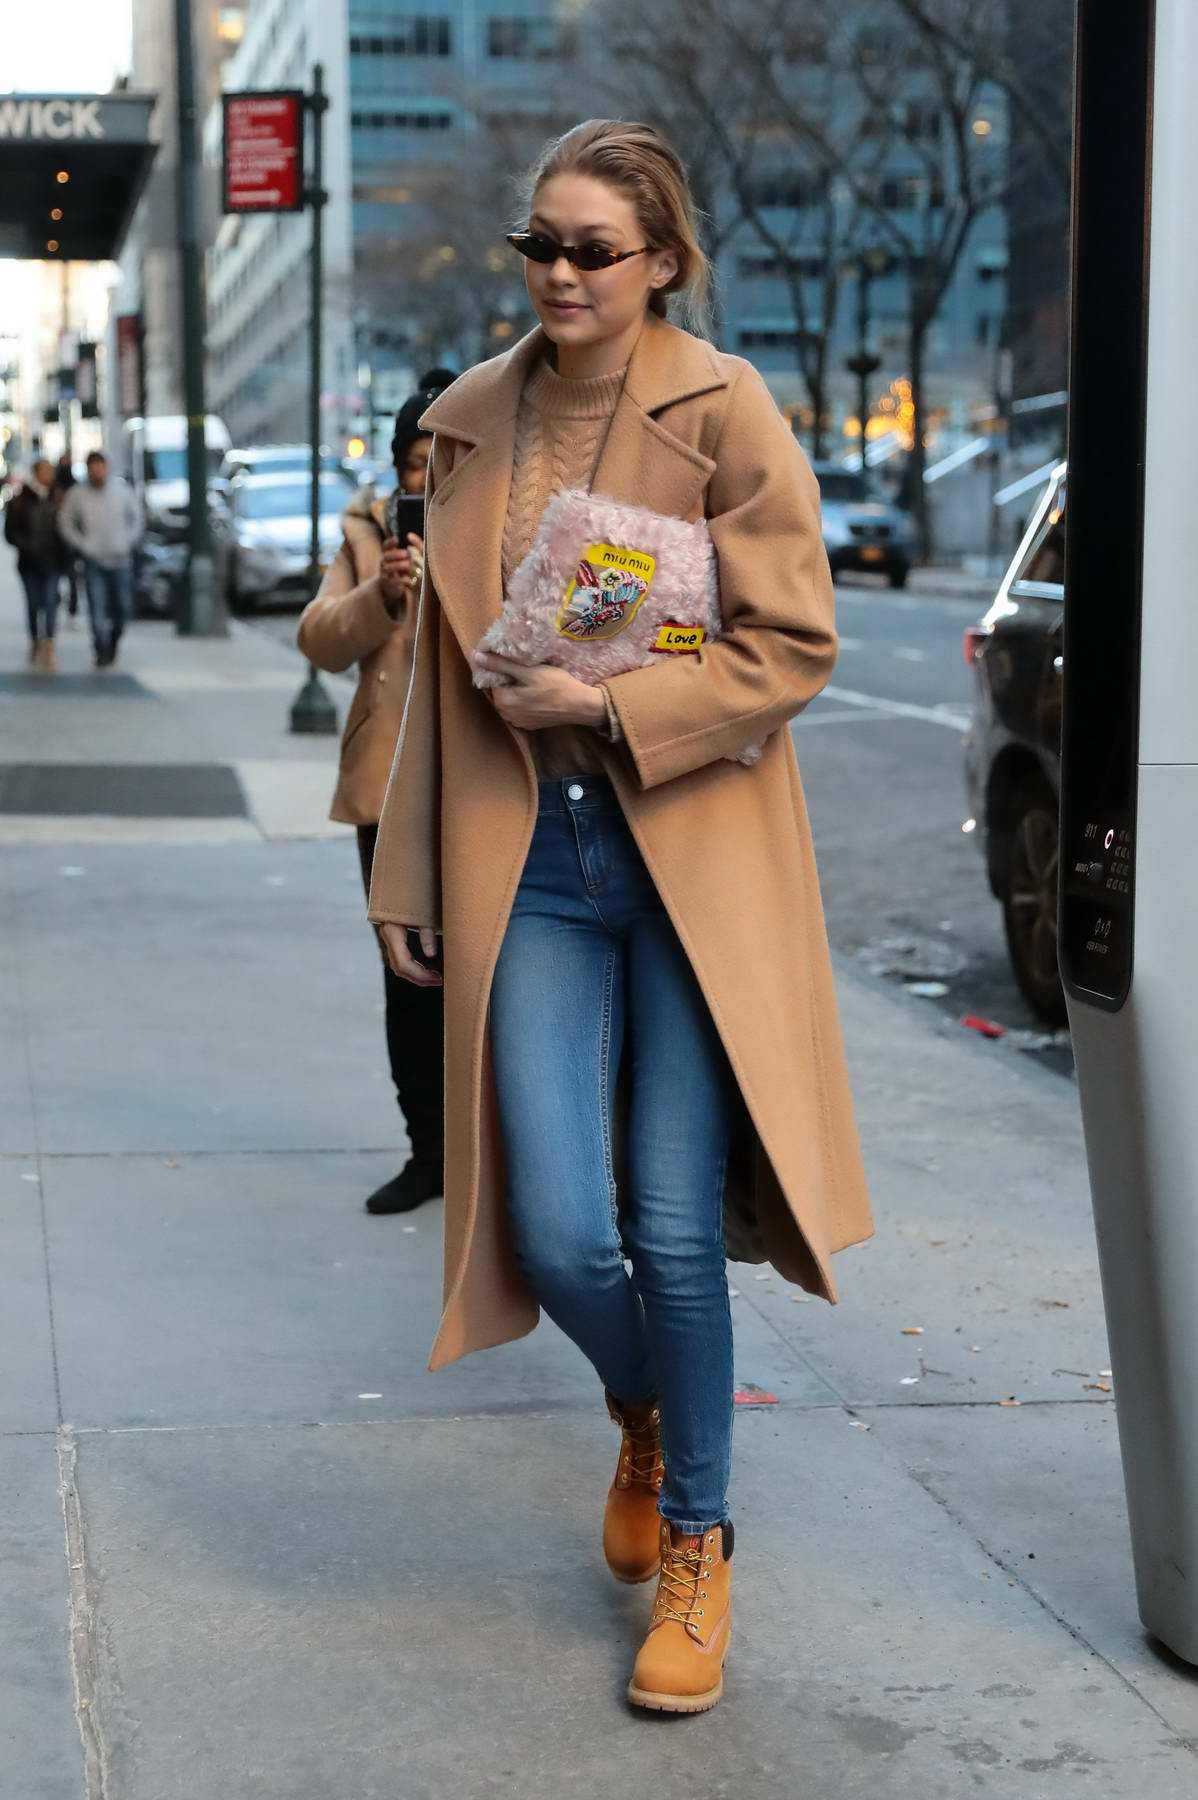 Gigi Hadid steps out in a beige trench coat and jeans as she runs errands in New York City